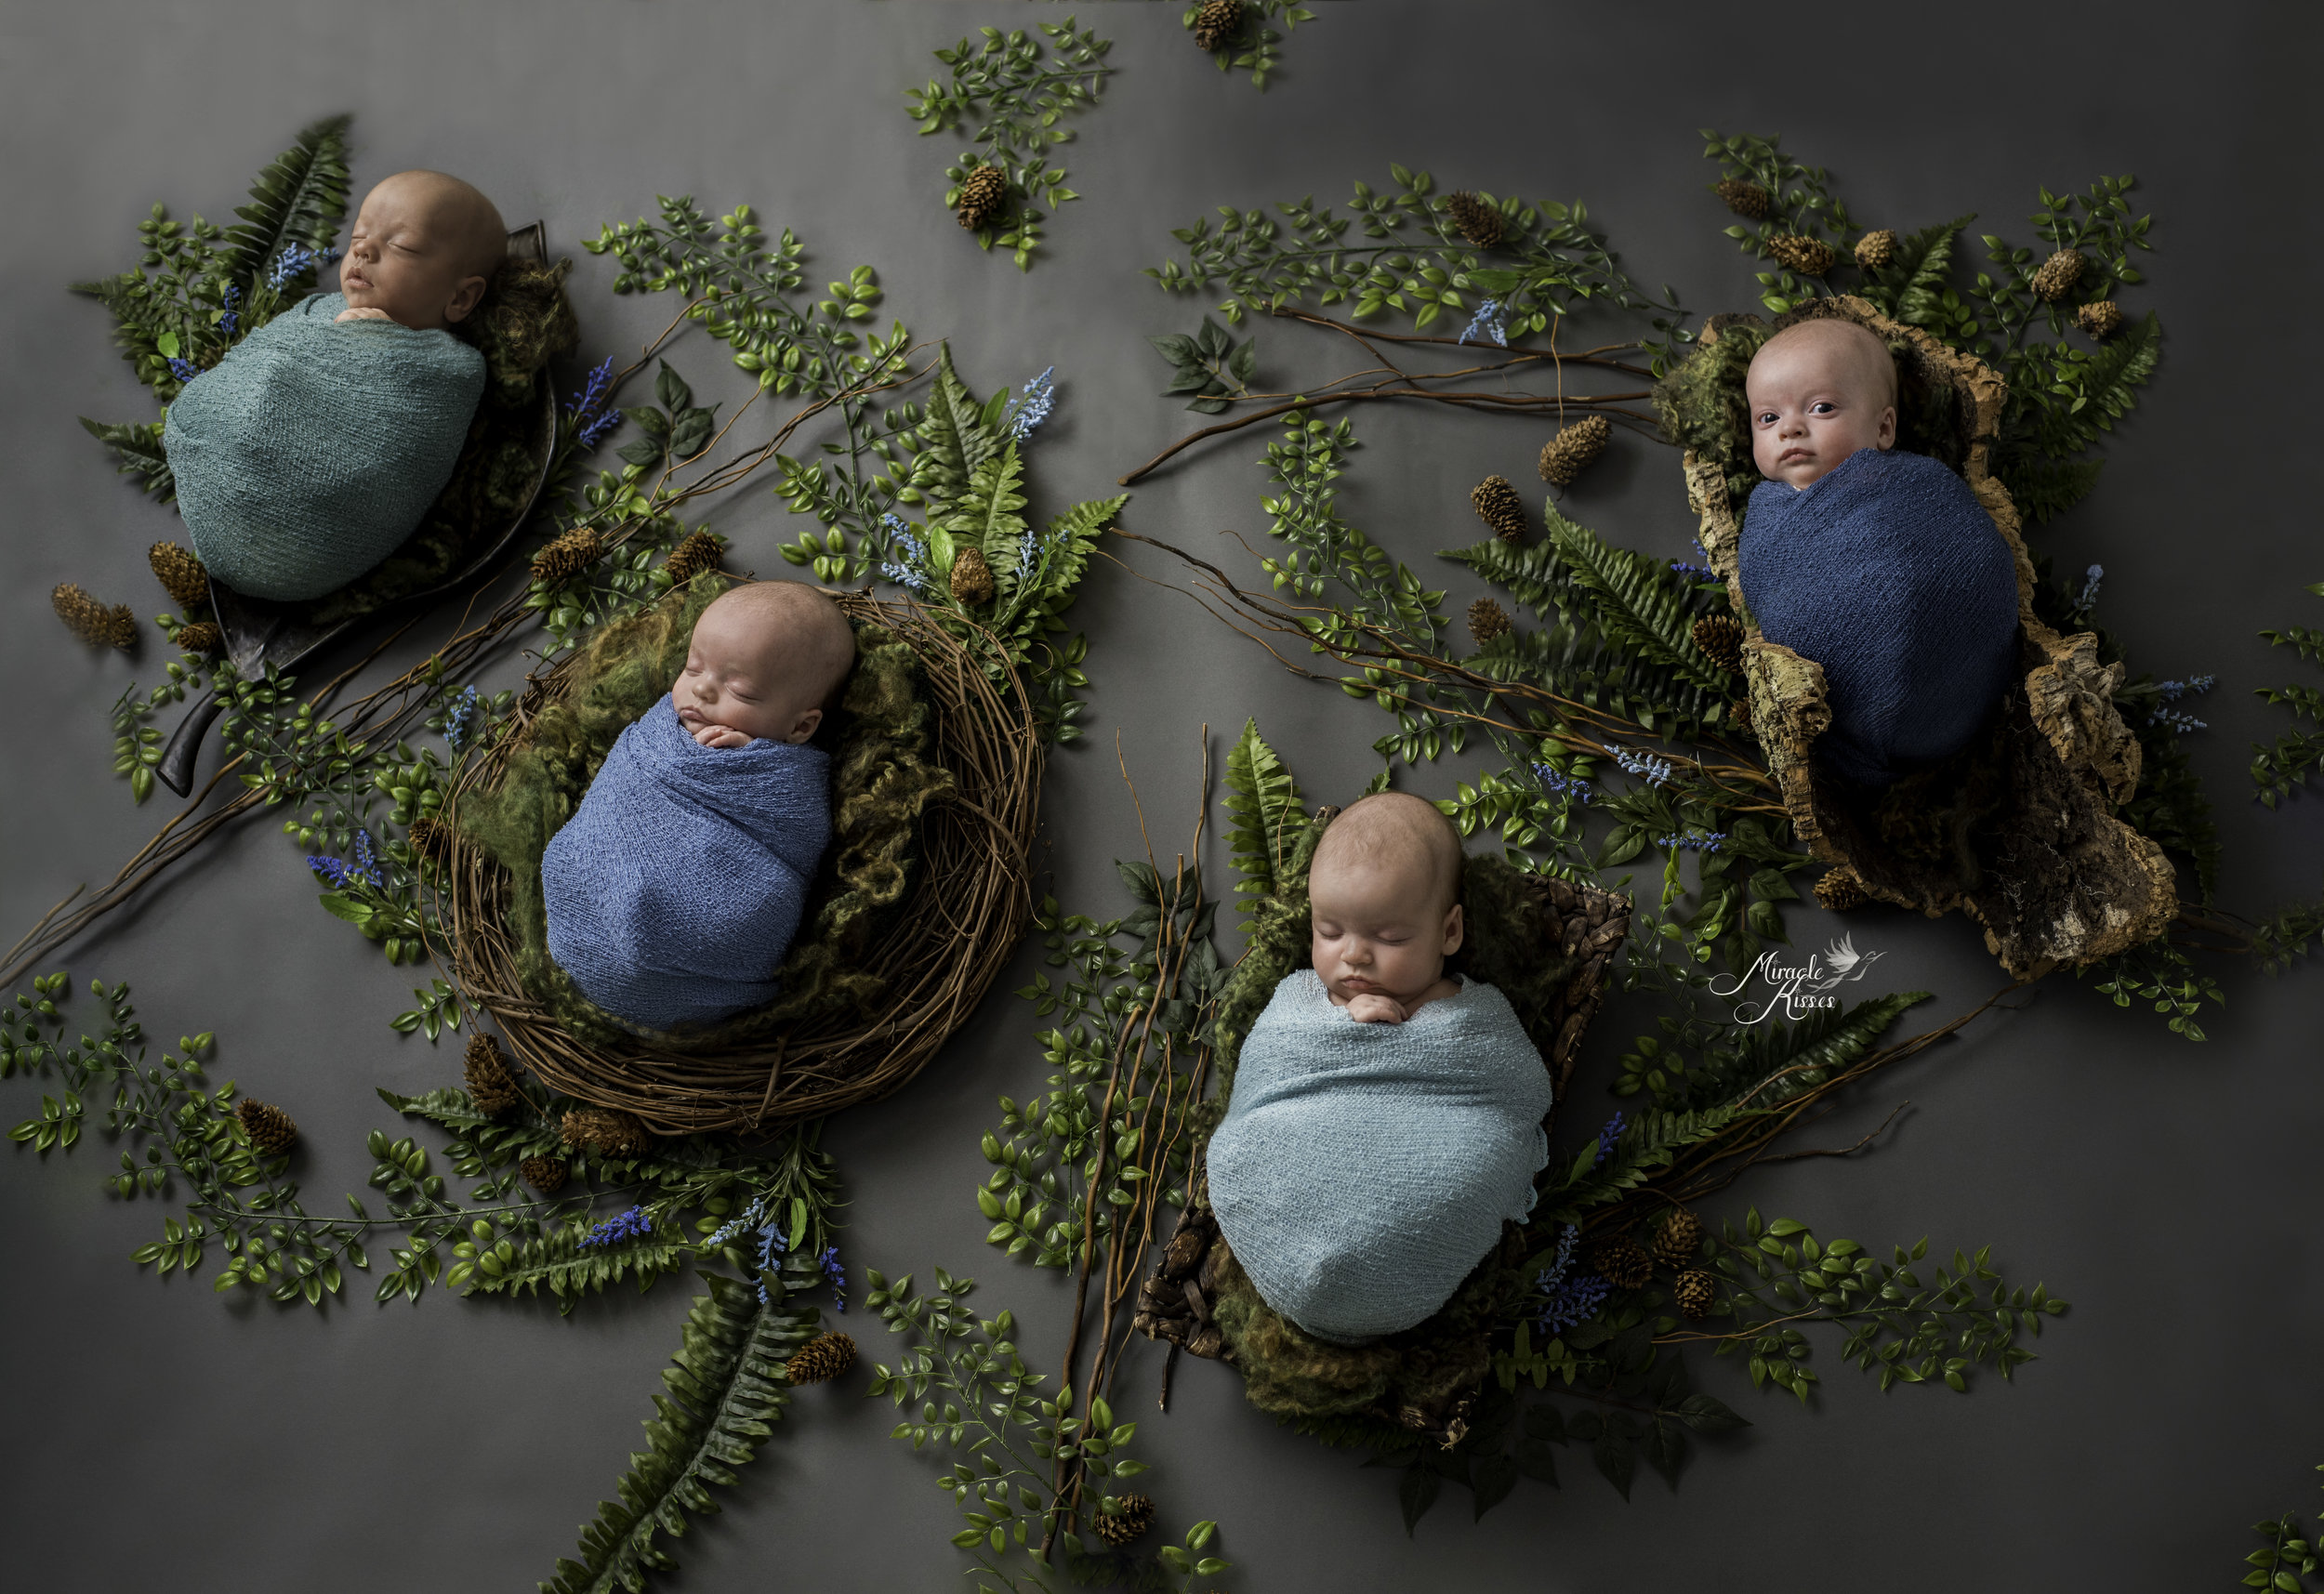 colorado newborn photographer, posed newborn, quadruplets, custom portraiture